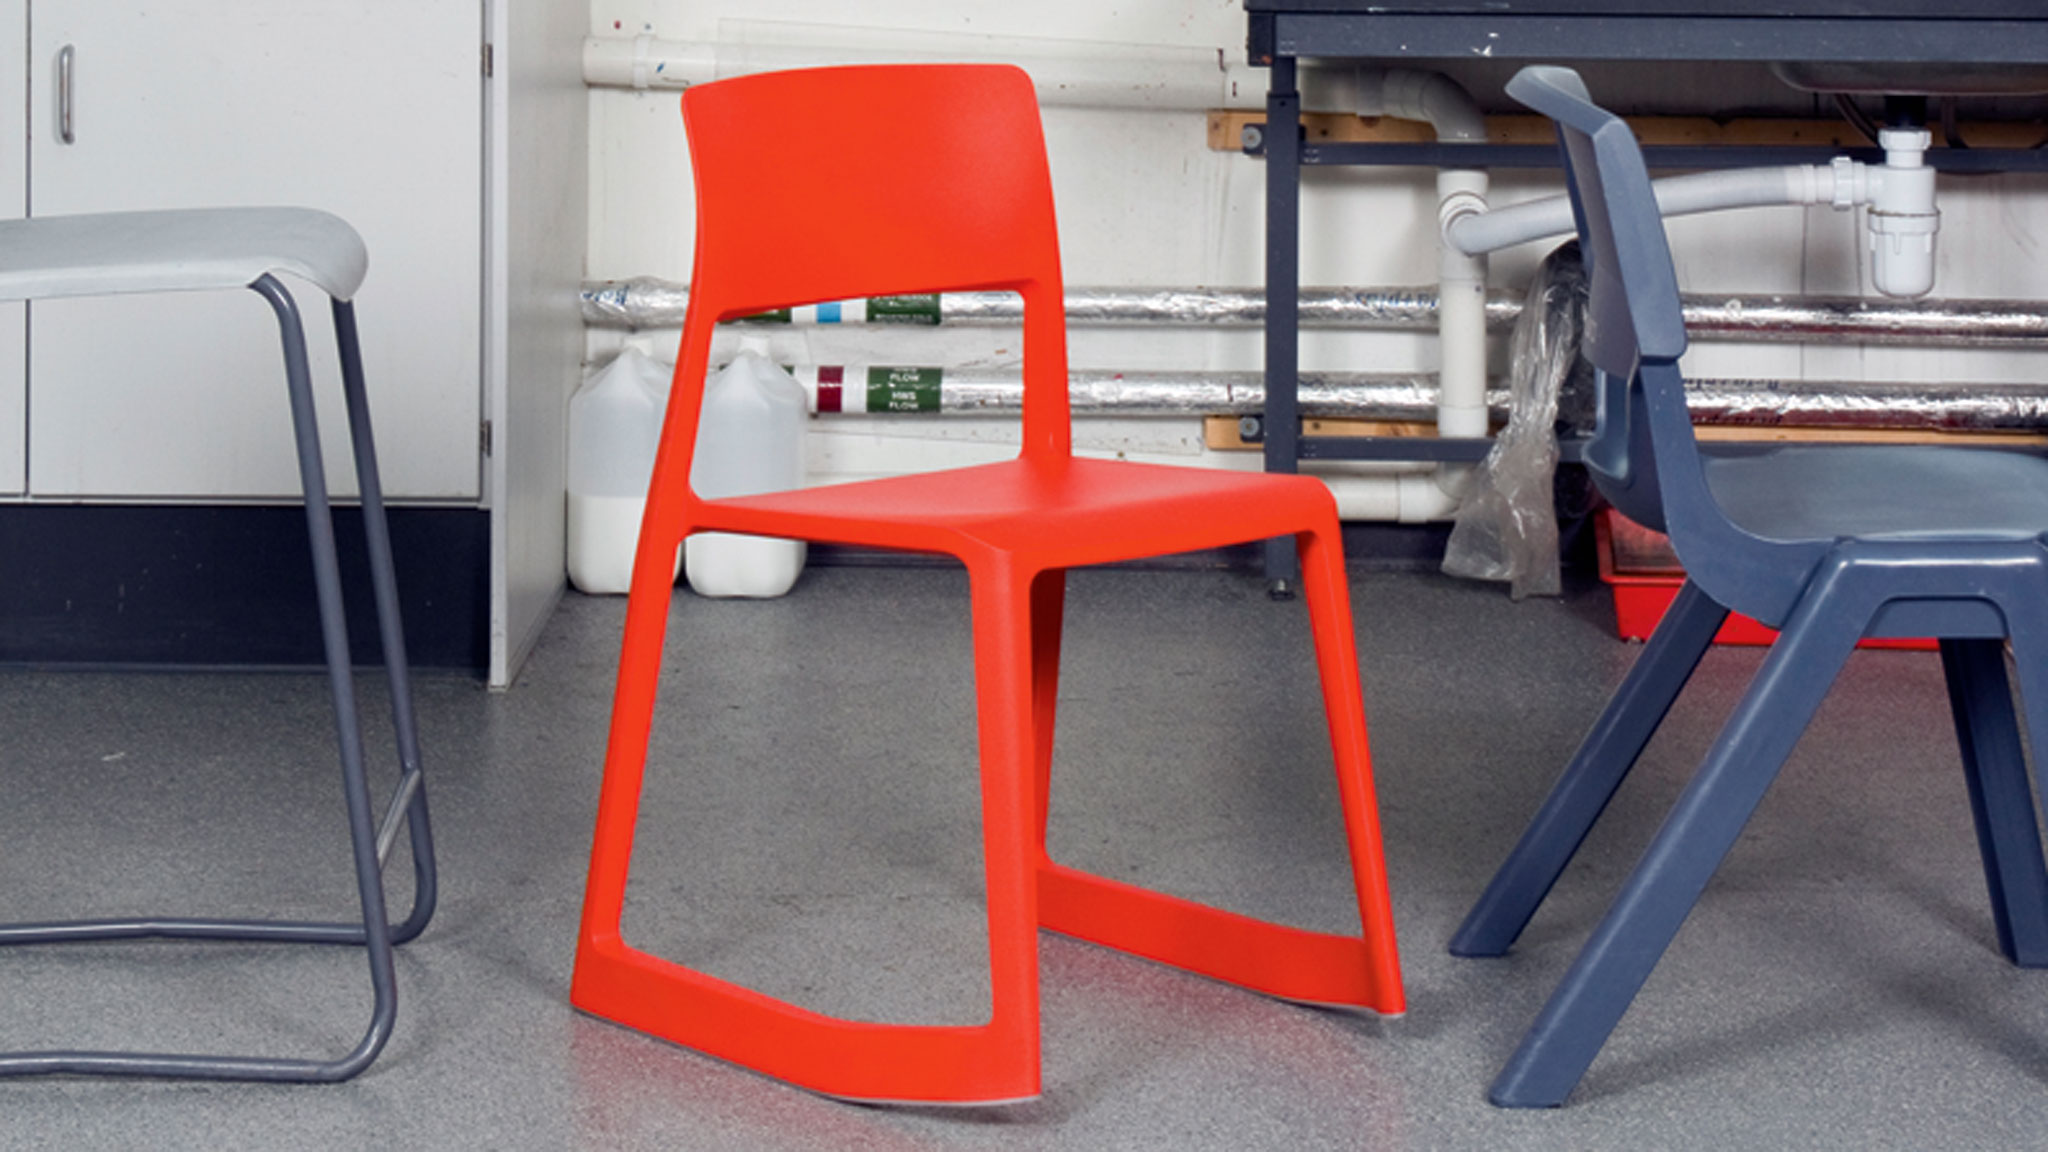 The Tip Ton Chair by Barber Osgerby